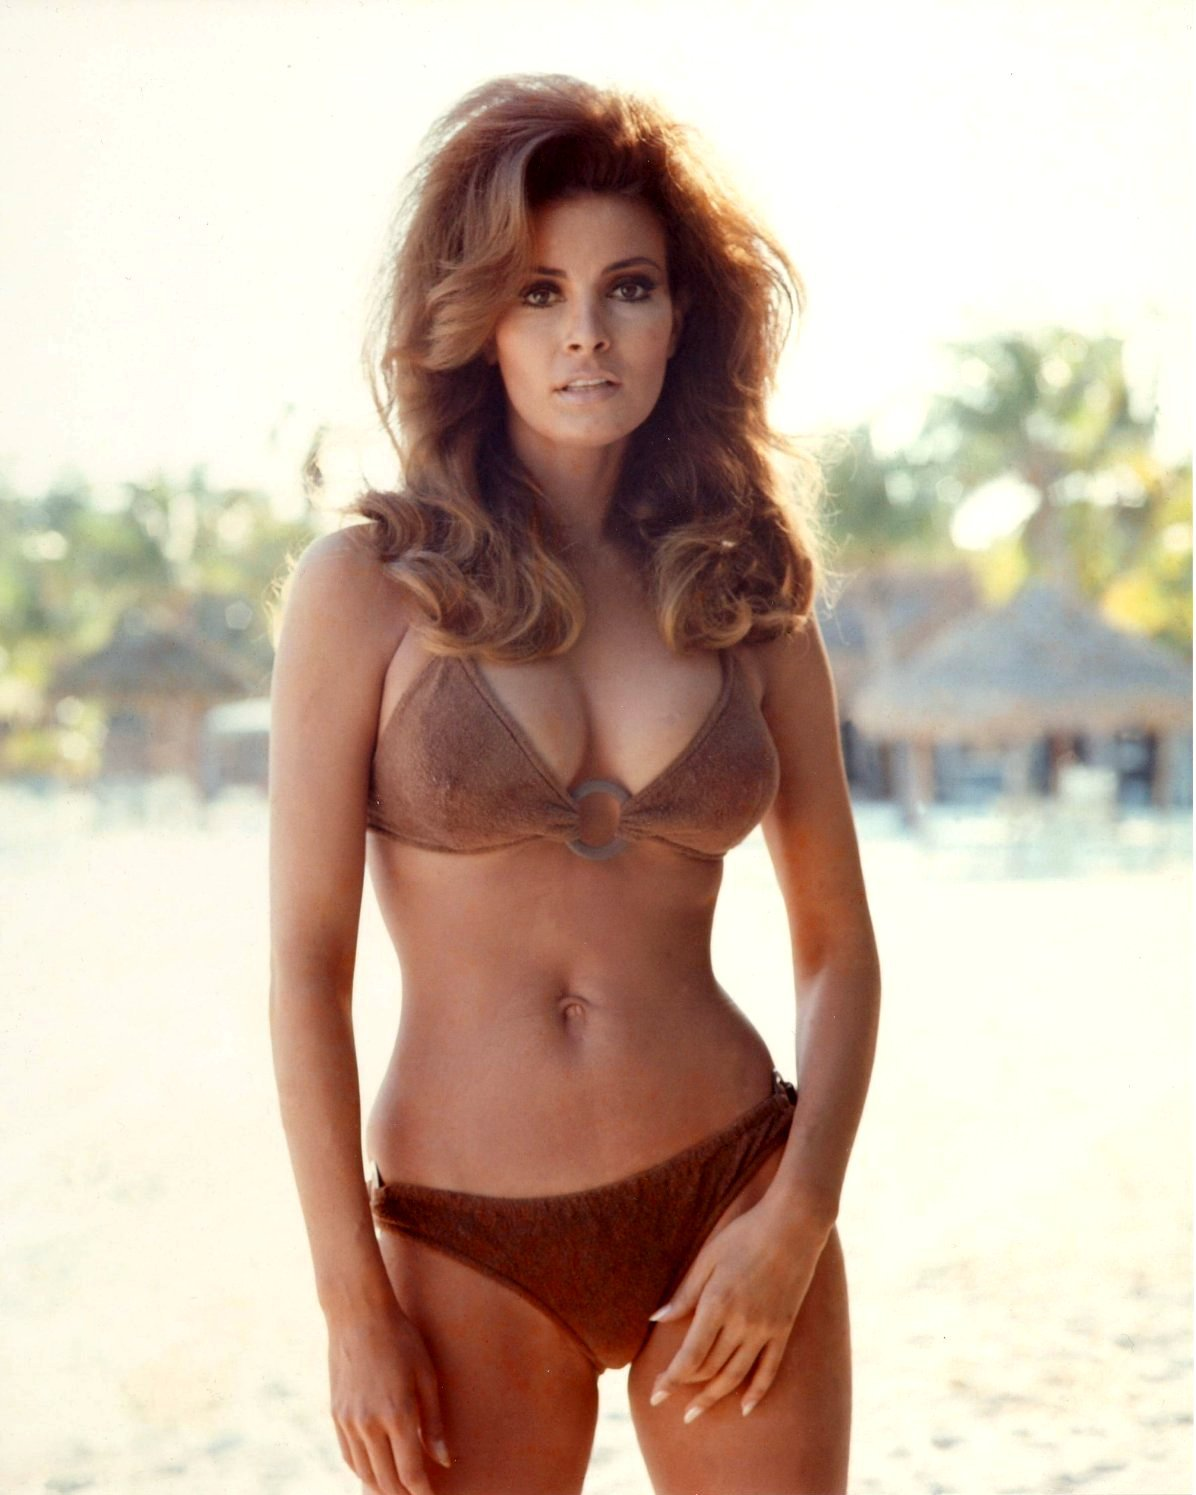 ACTRESS RAQUEL WELCH PHOTO SIX-PACK - (6) 8X10 PUBLICITY PHOTOS (SP-A04)